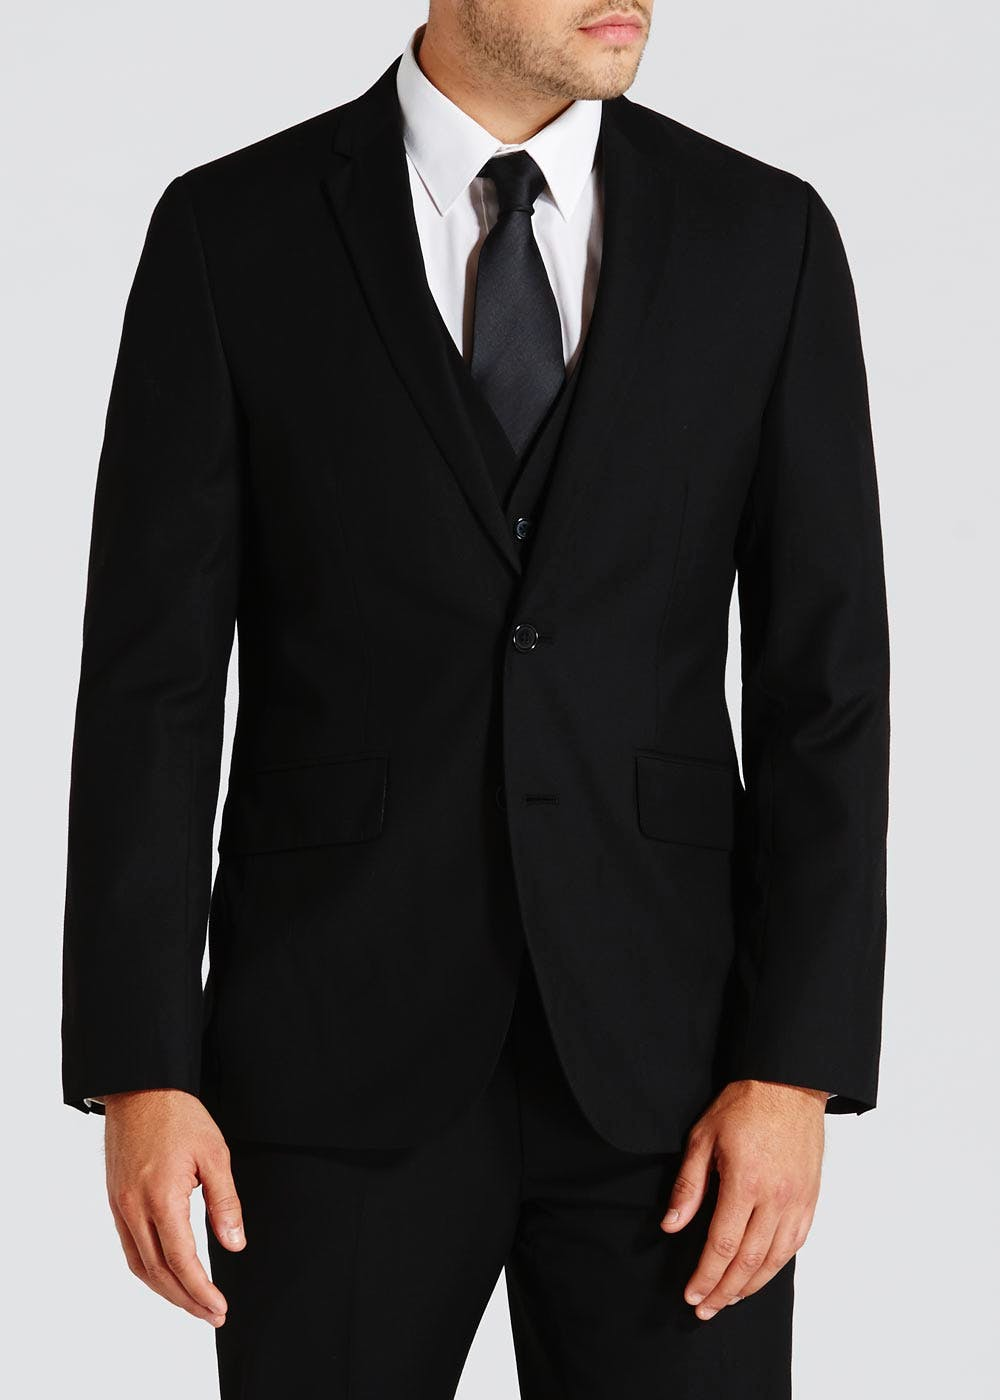 Are you looking for Matalan Mens Dress Suits Tbdress is a best place to buy Men's Dress Suits. Here offers a fantastic collection of Matalan Mens Dress Suits, variety of styles, colors to suit you. All of items have the lowest price for you. So visit Tbdress now, you will have a super surprising!